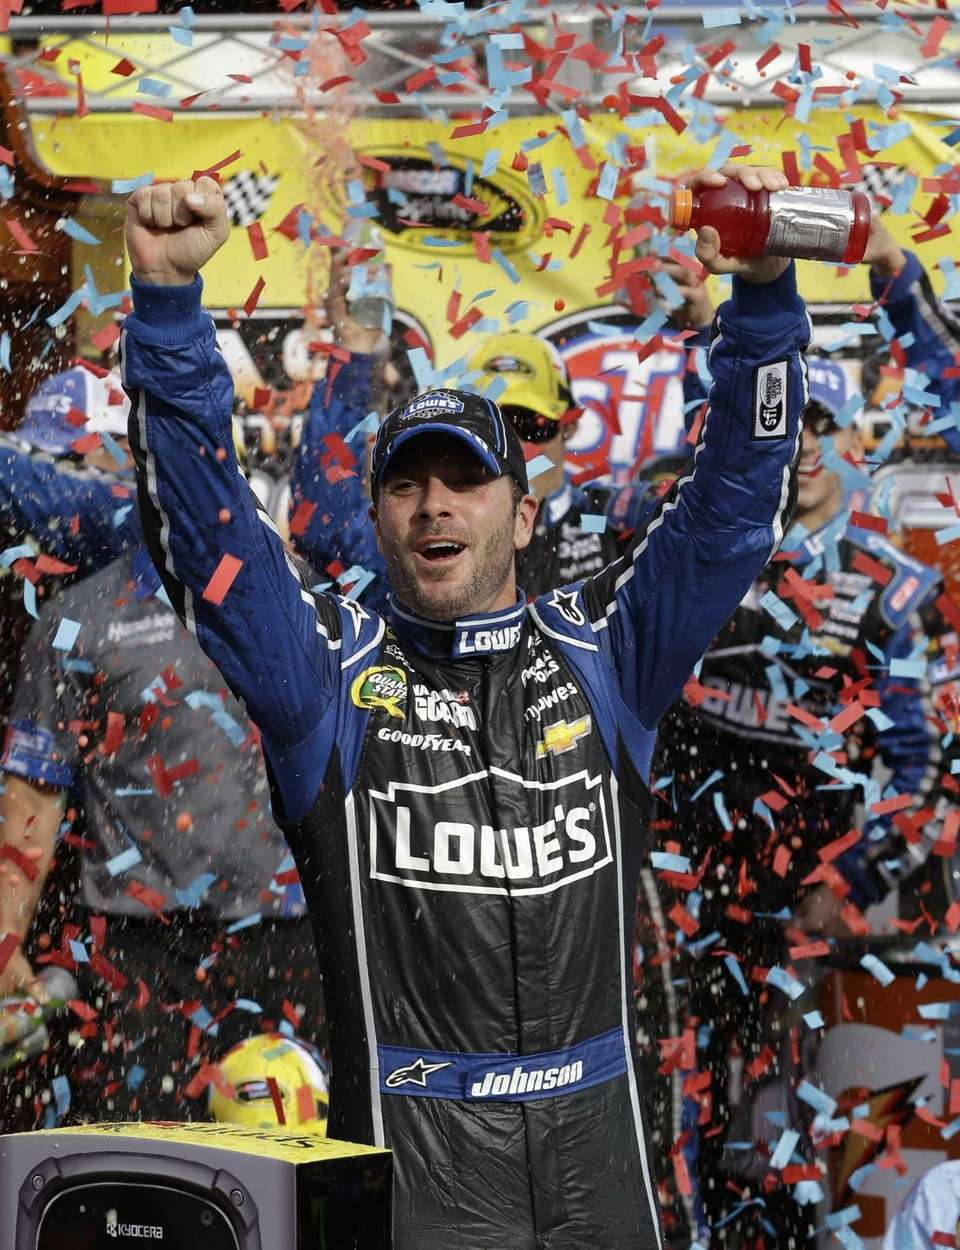 Jimmie Johnson celebrates winning the NASCAR Sprint Cup